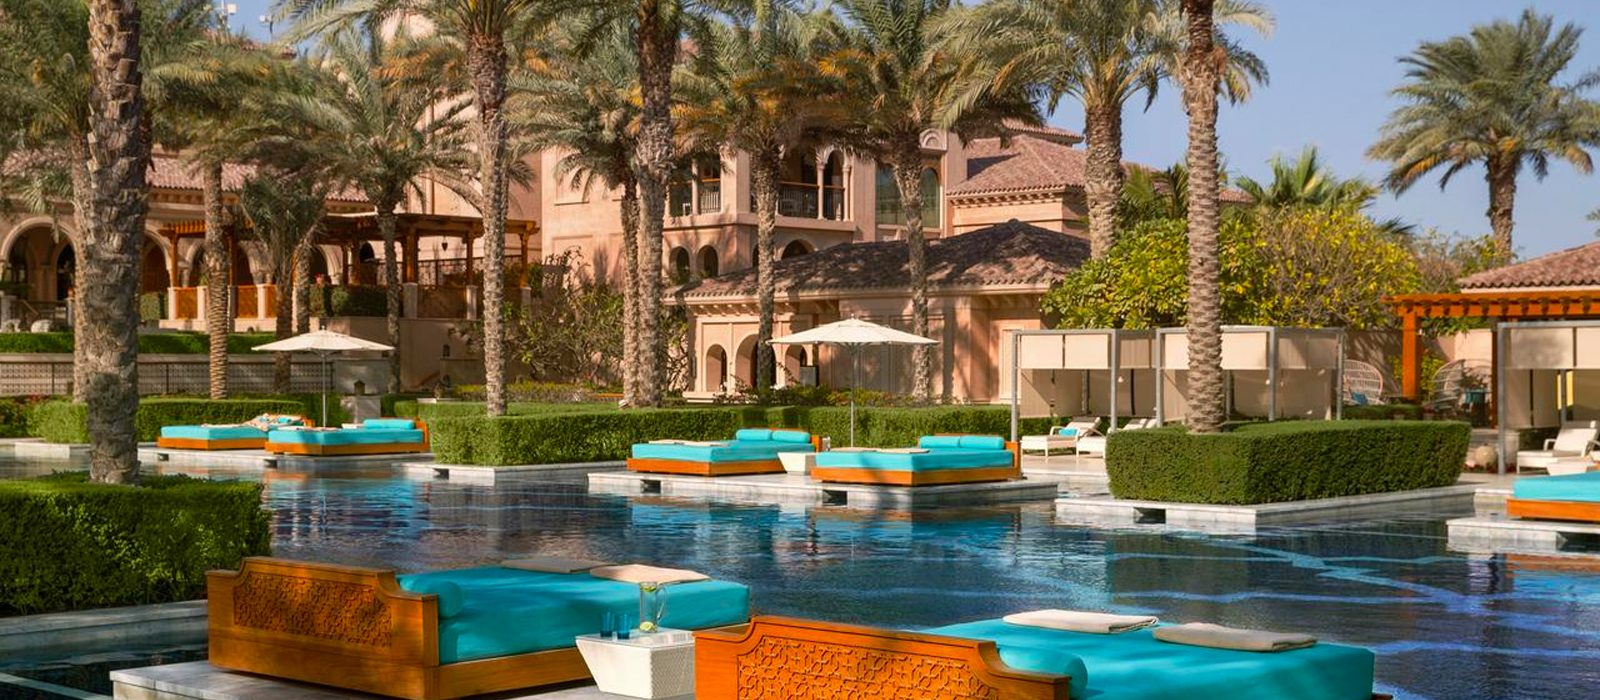 Luxury Dubai Holiday Packages One&Only The Palm Header